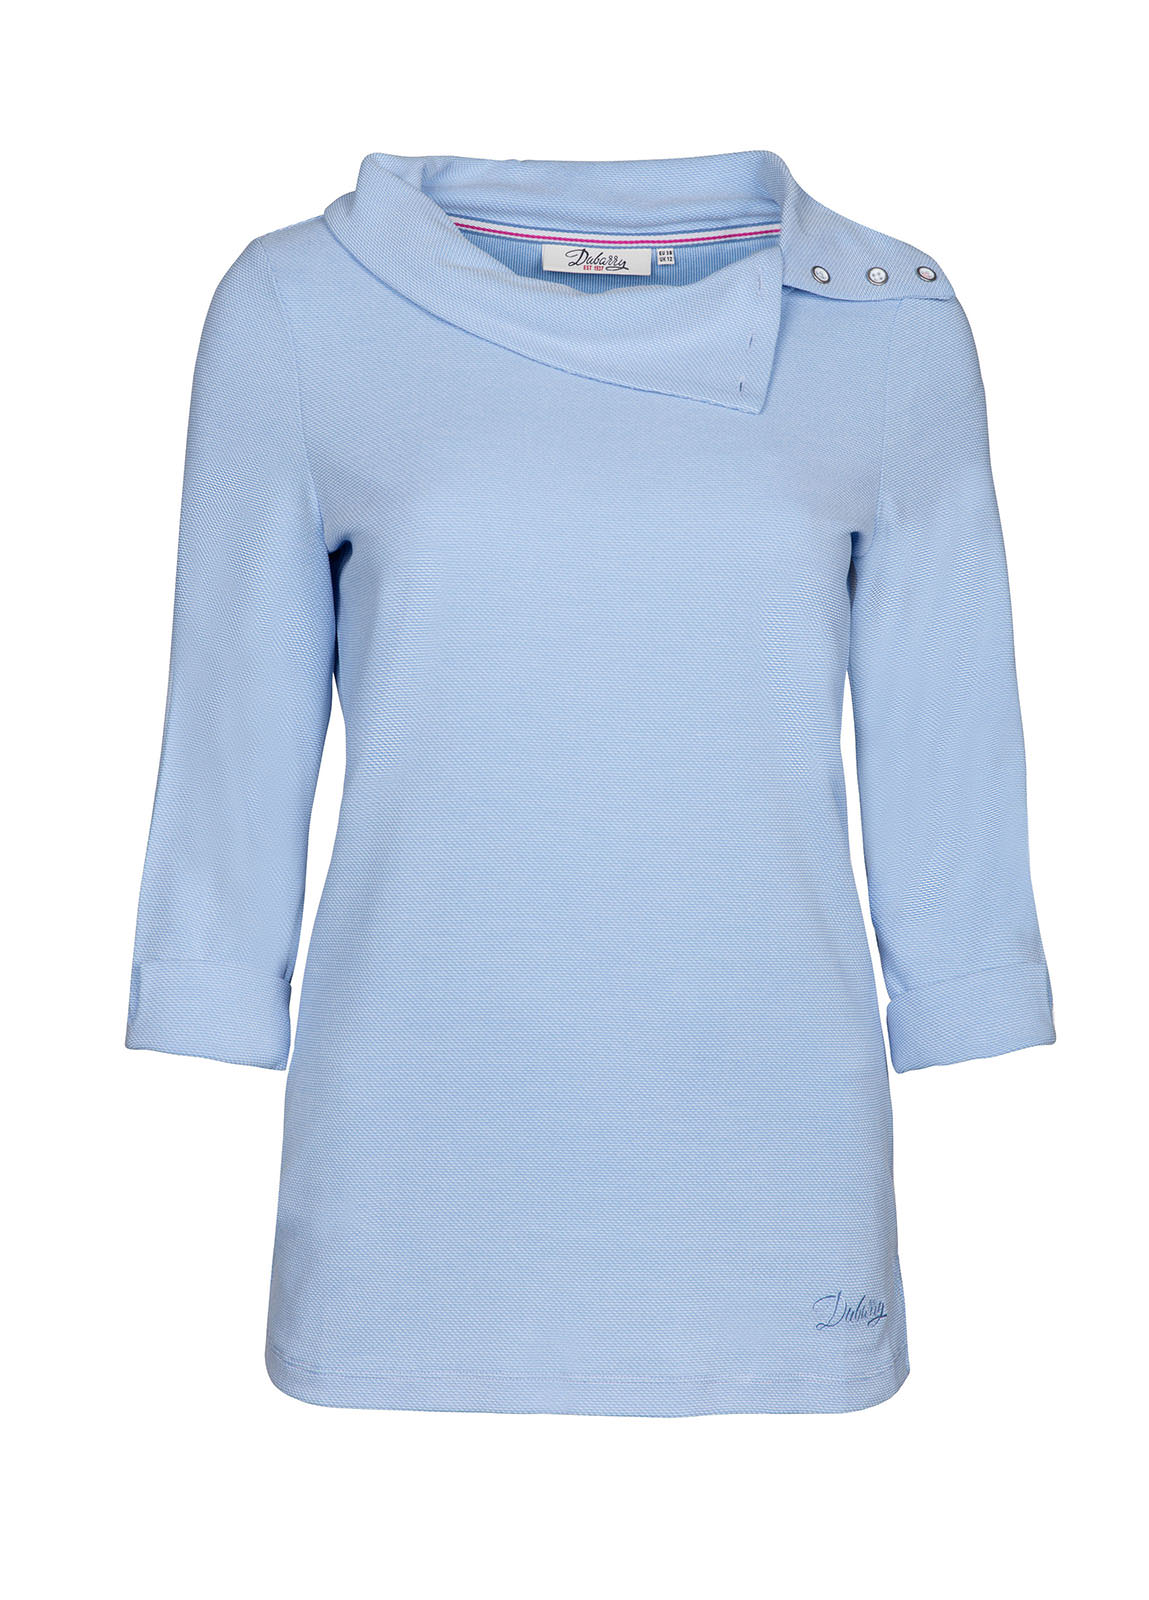 Dubarry_Malbay Three-quater sleeve top - Pale Blue_Image_2